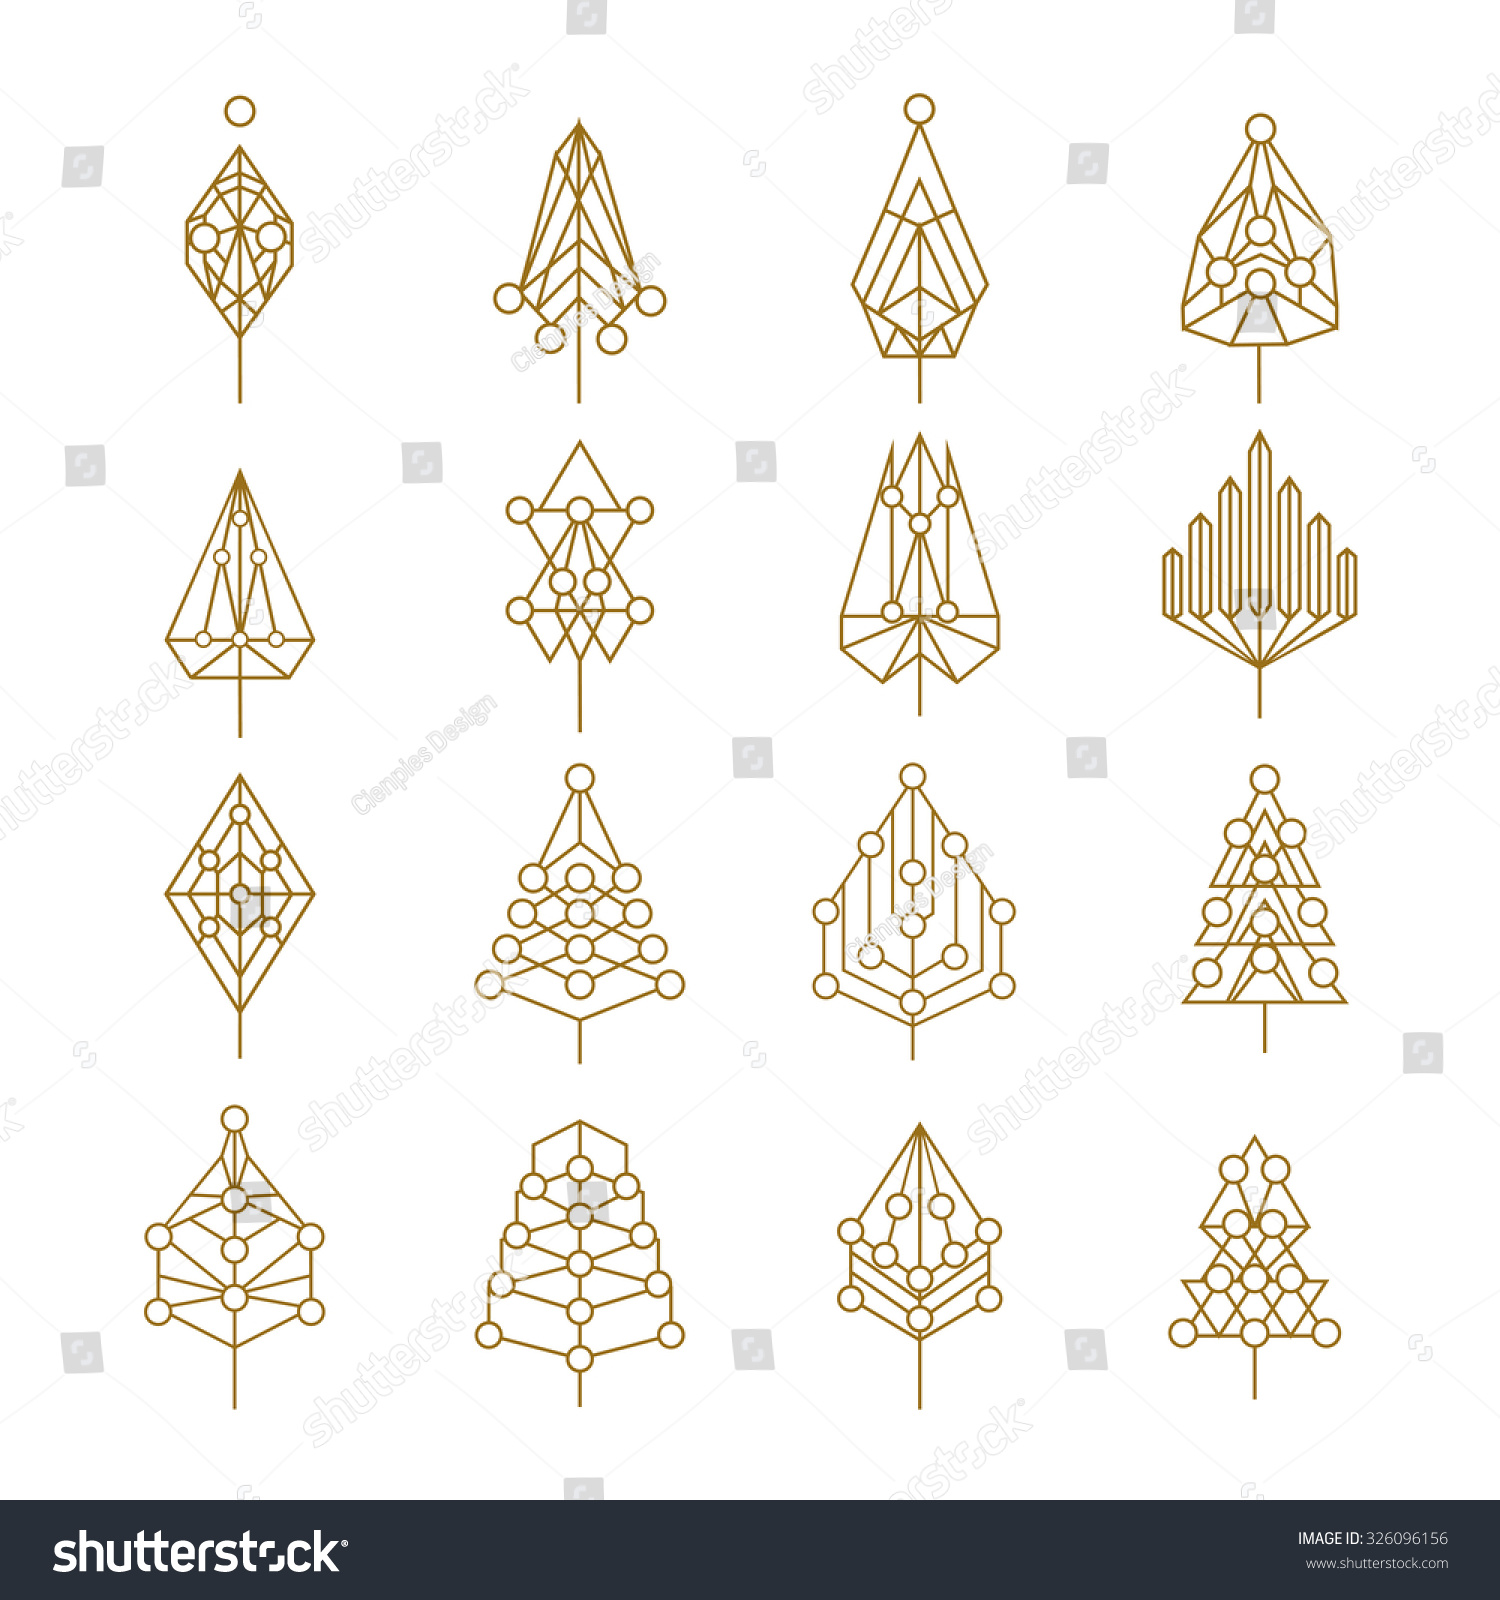 Design your own christmas ornaments - Set Of Abstract Outline Style Christmas Pine Trees With Geometric Holiday Ornaments Ideal For Creating